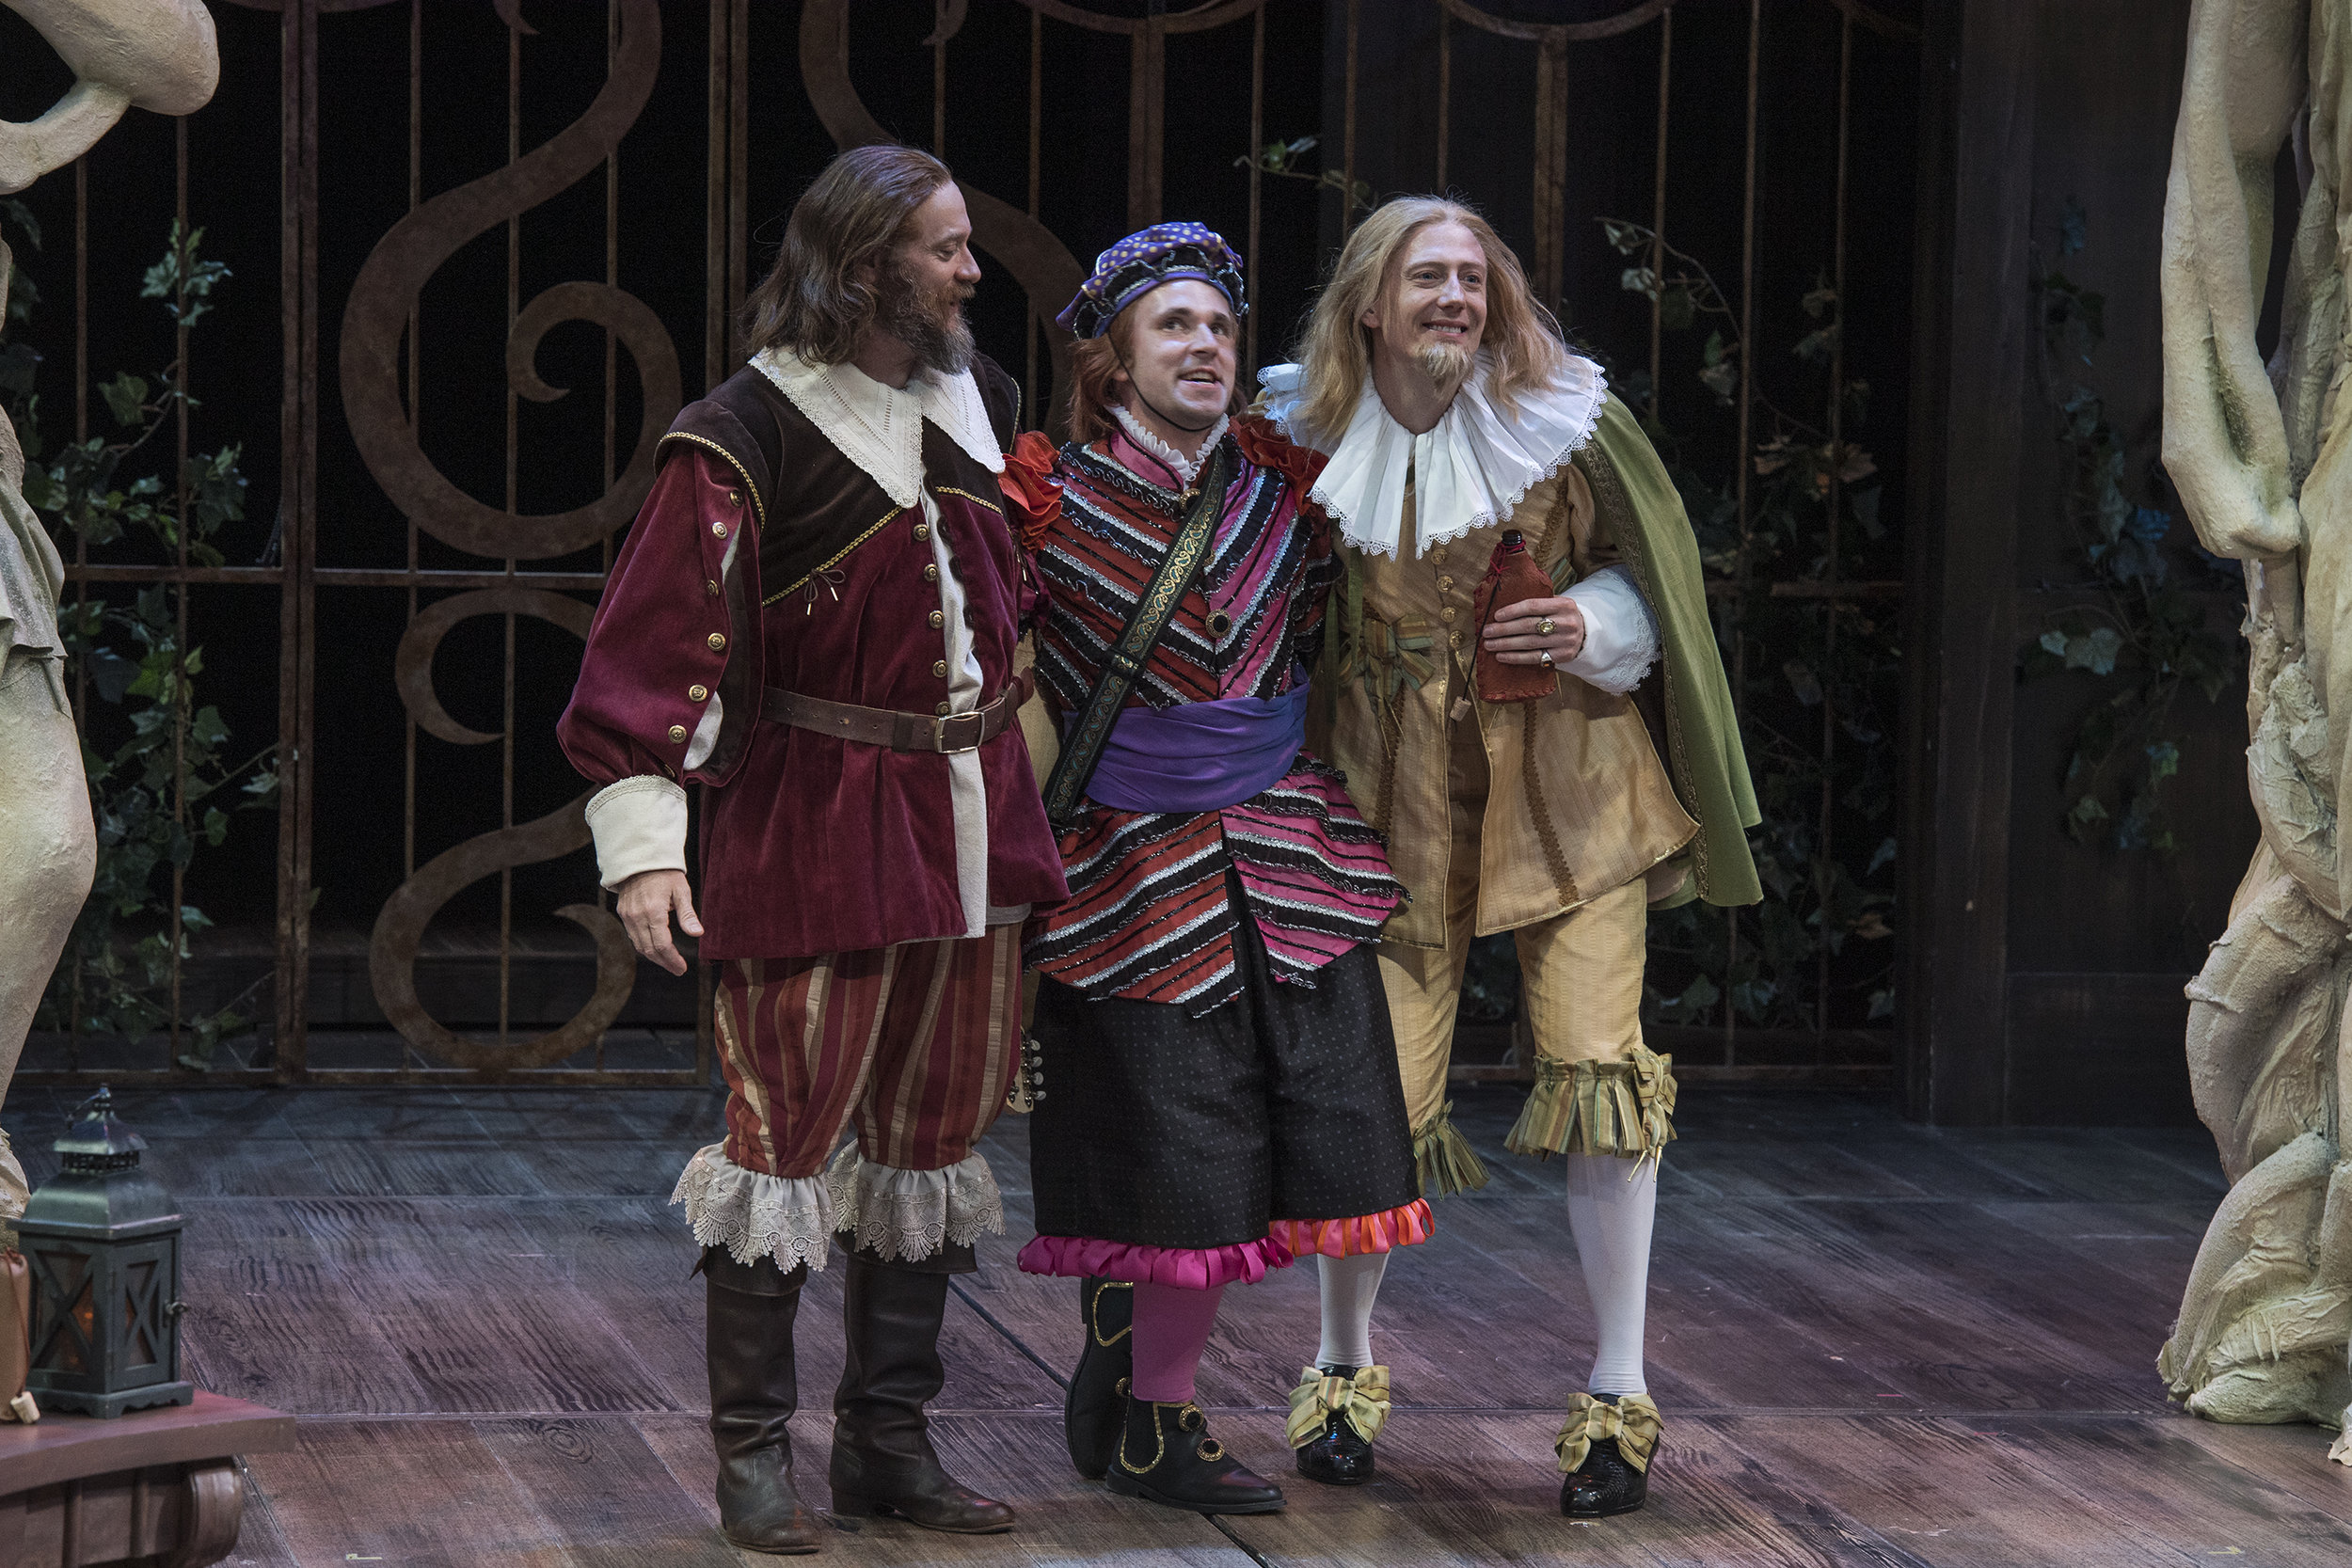 2019  Twelfth   Night  at the Utah Shakespeare Festival, directed by Sam White.  Photo by Karl Hugh